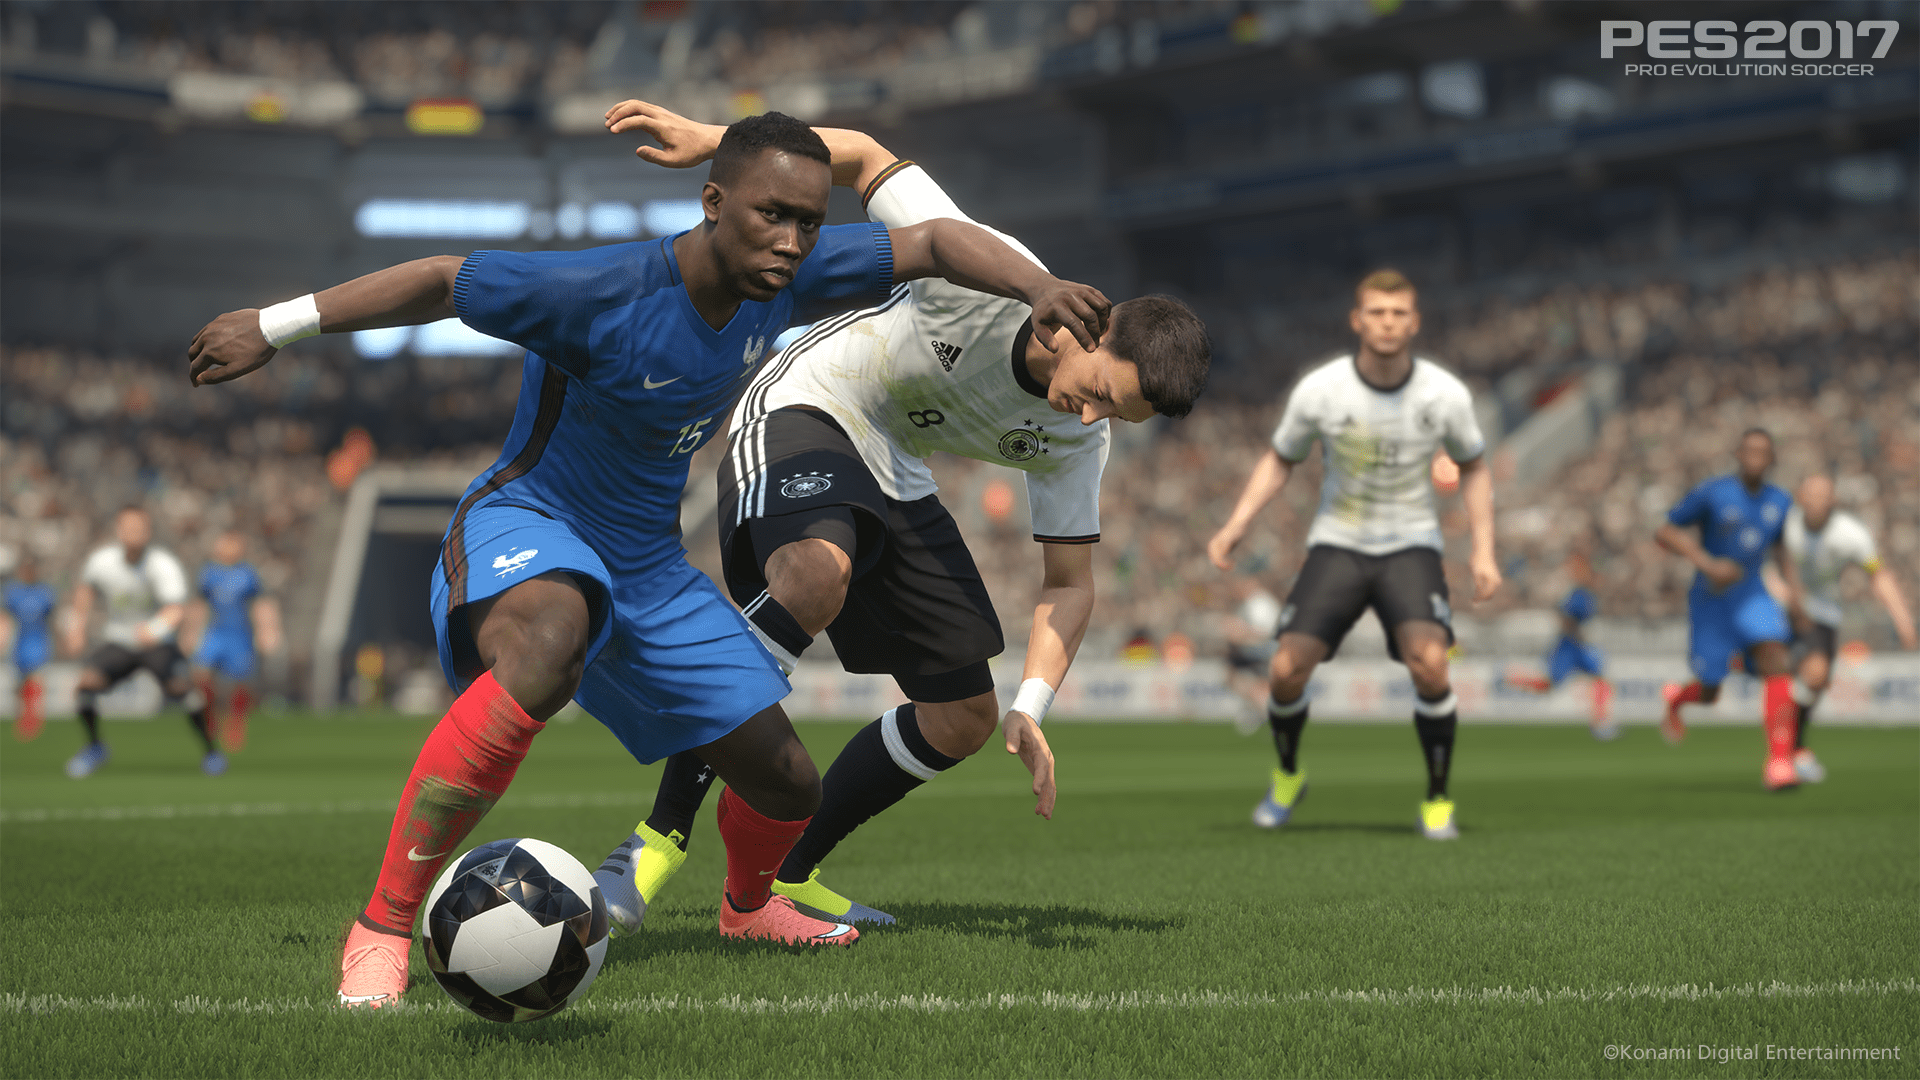 Image result for pes 2017 1920x1080